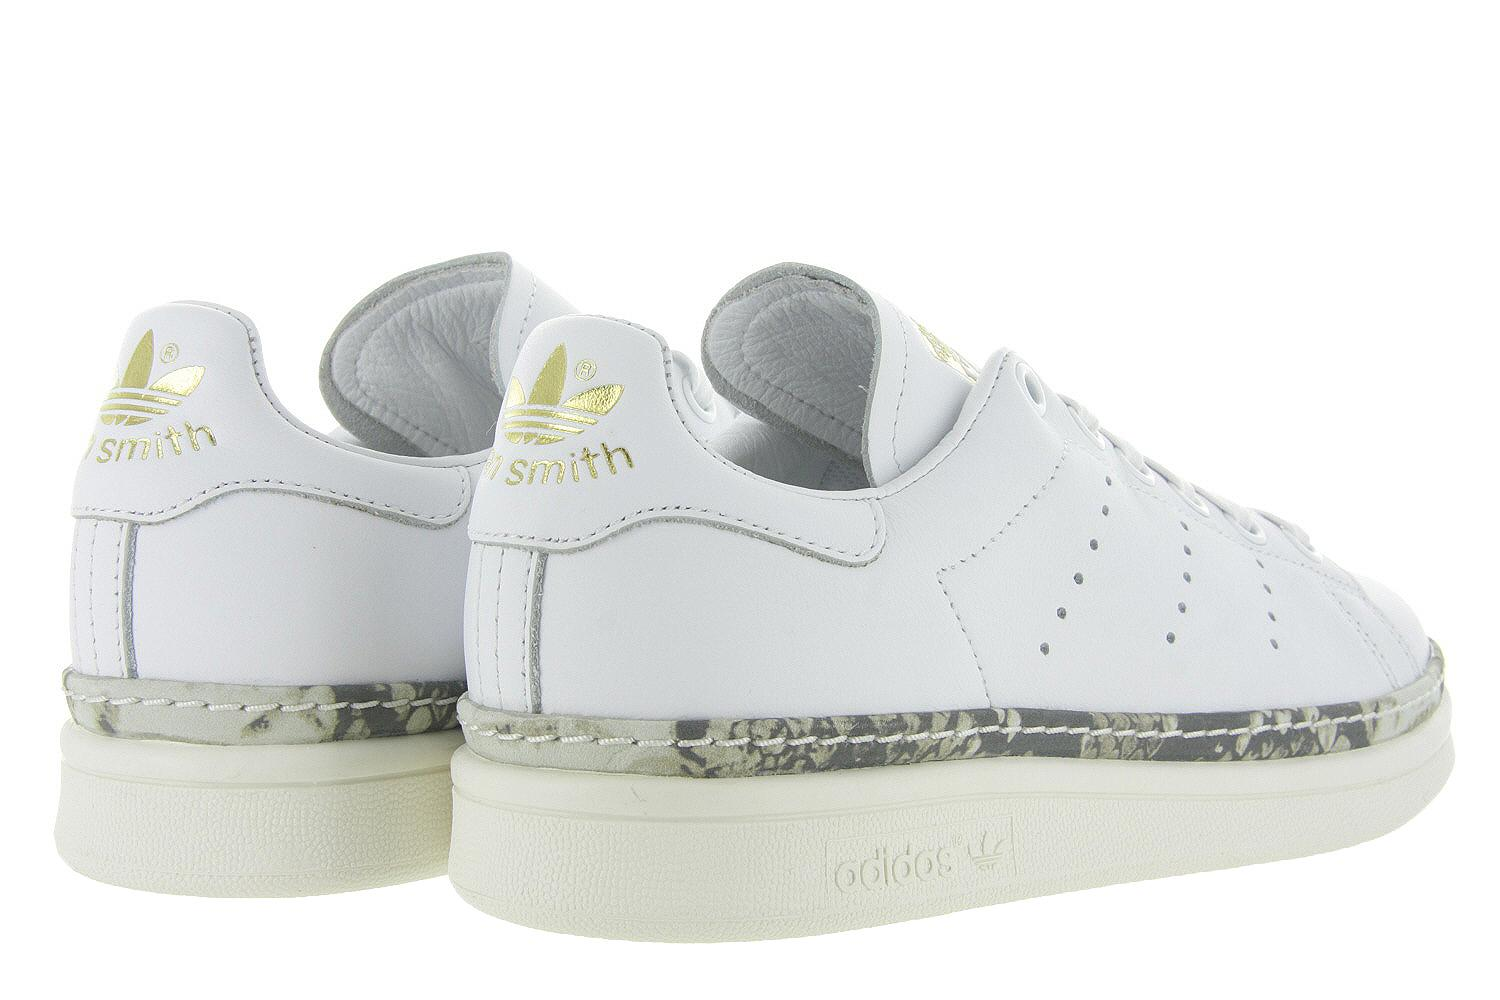 New Aw6qprxa Wit Adidas Stan Smith Damesschoenen Bold Sneakers xCohQtBsrd